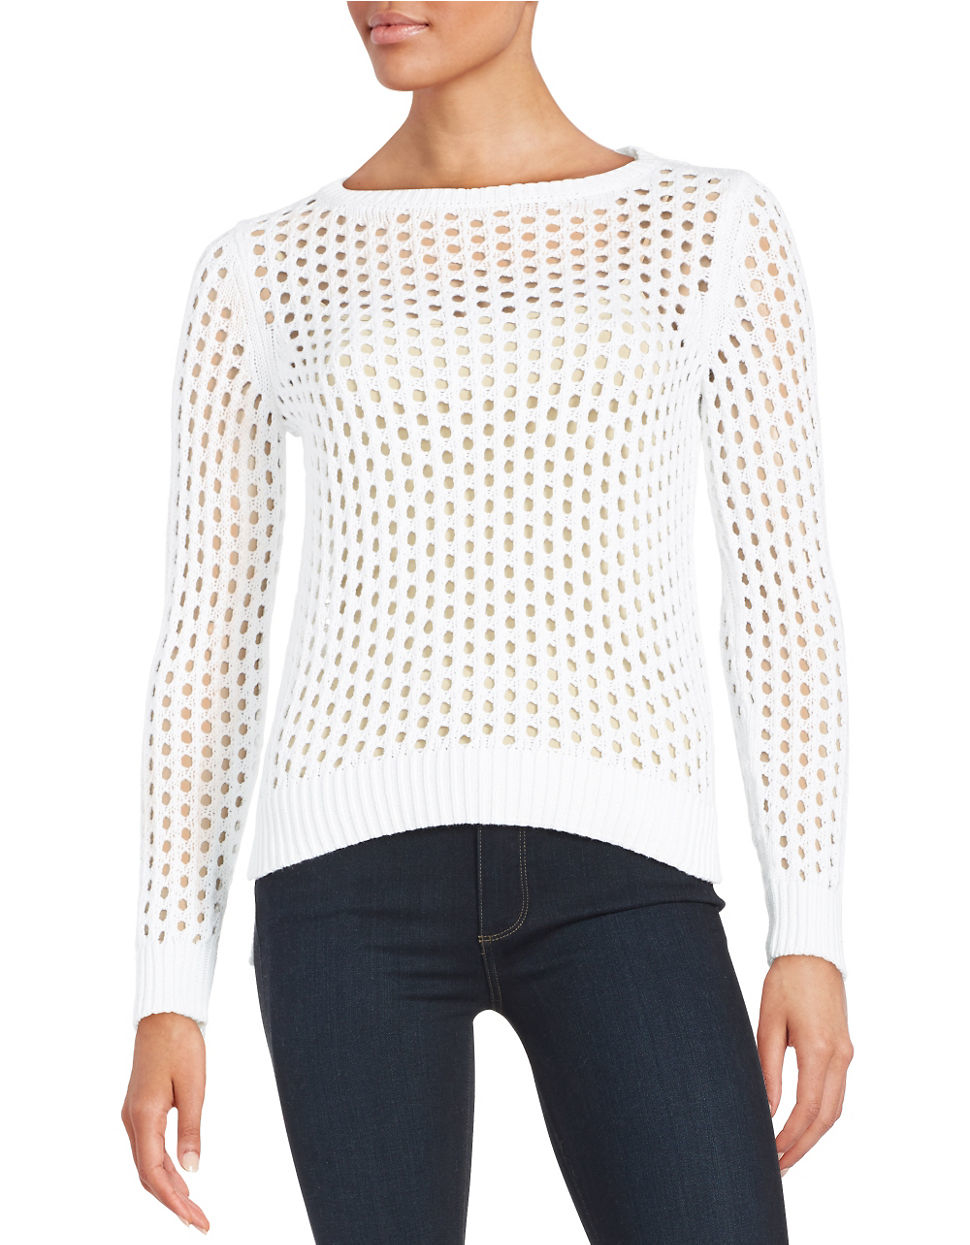 68a8882a4080d8 Michael Michael Kors Petite Open-knit Hi-lo Sweater in White - Lyst